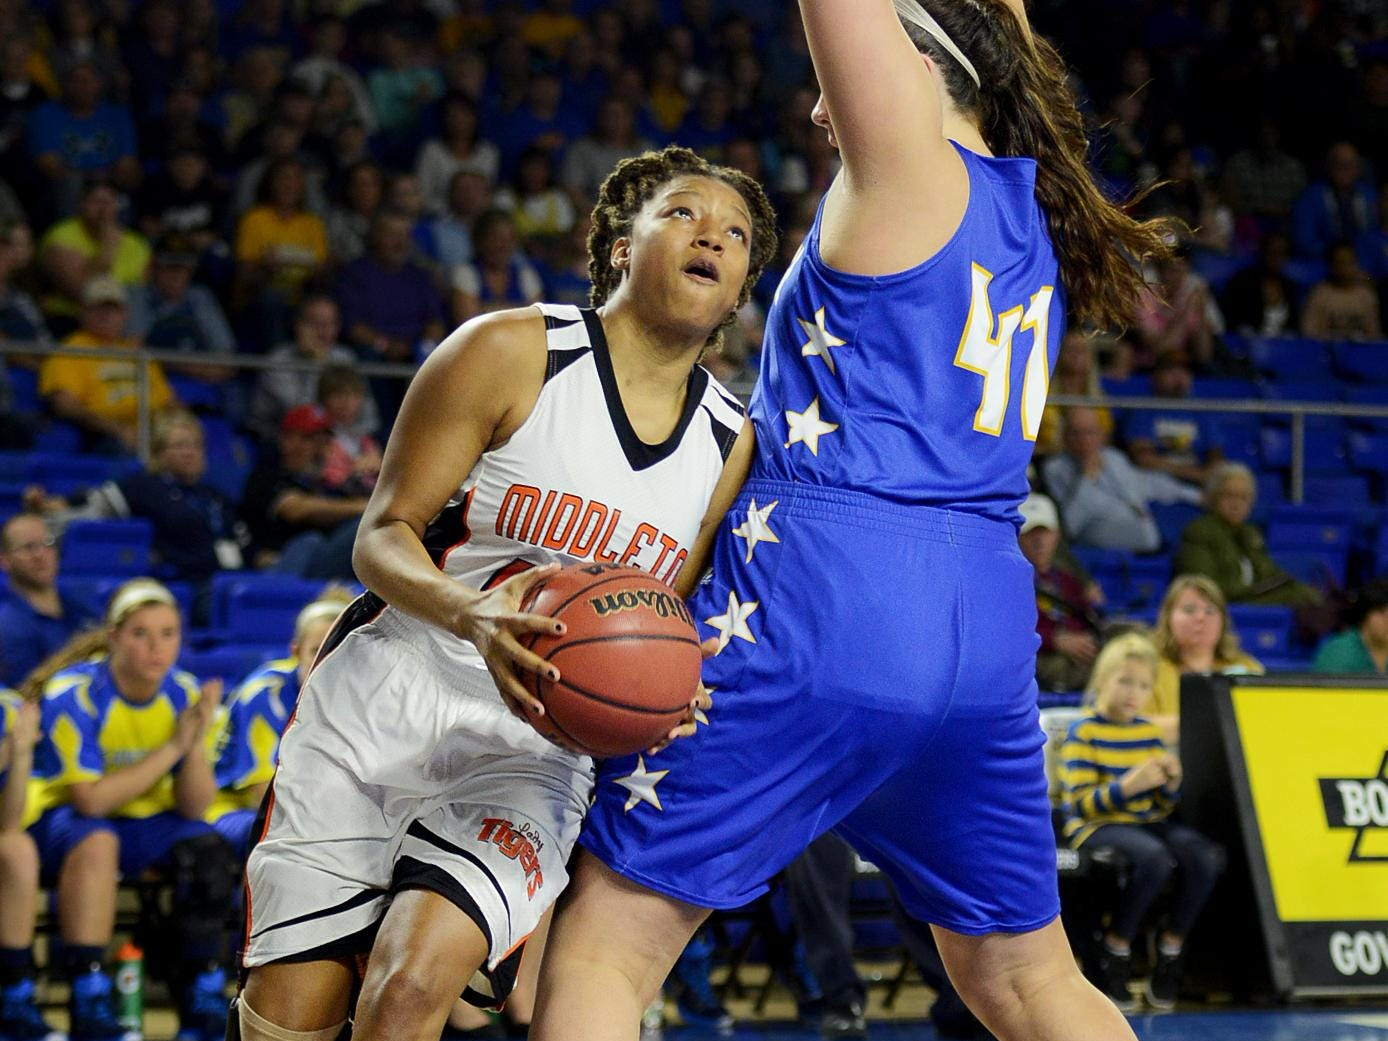 Middleton's Rachelle Parks helped lead the Lady Tigers to the Class A state championship with a 62-50 win over Clarkrange in March.